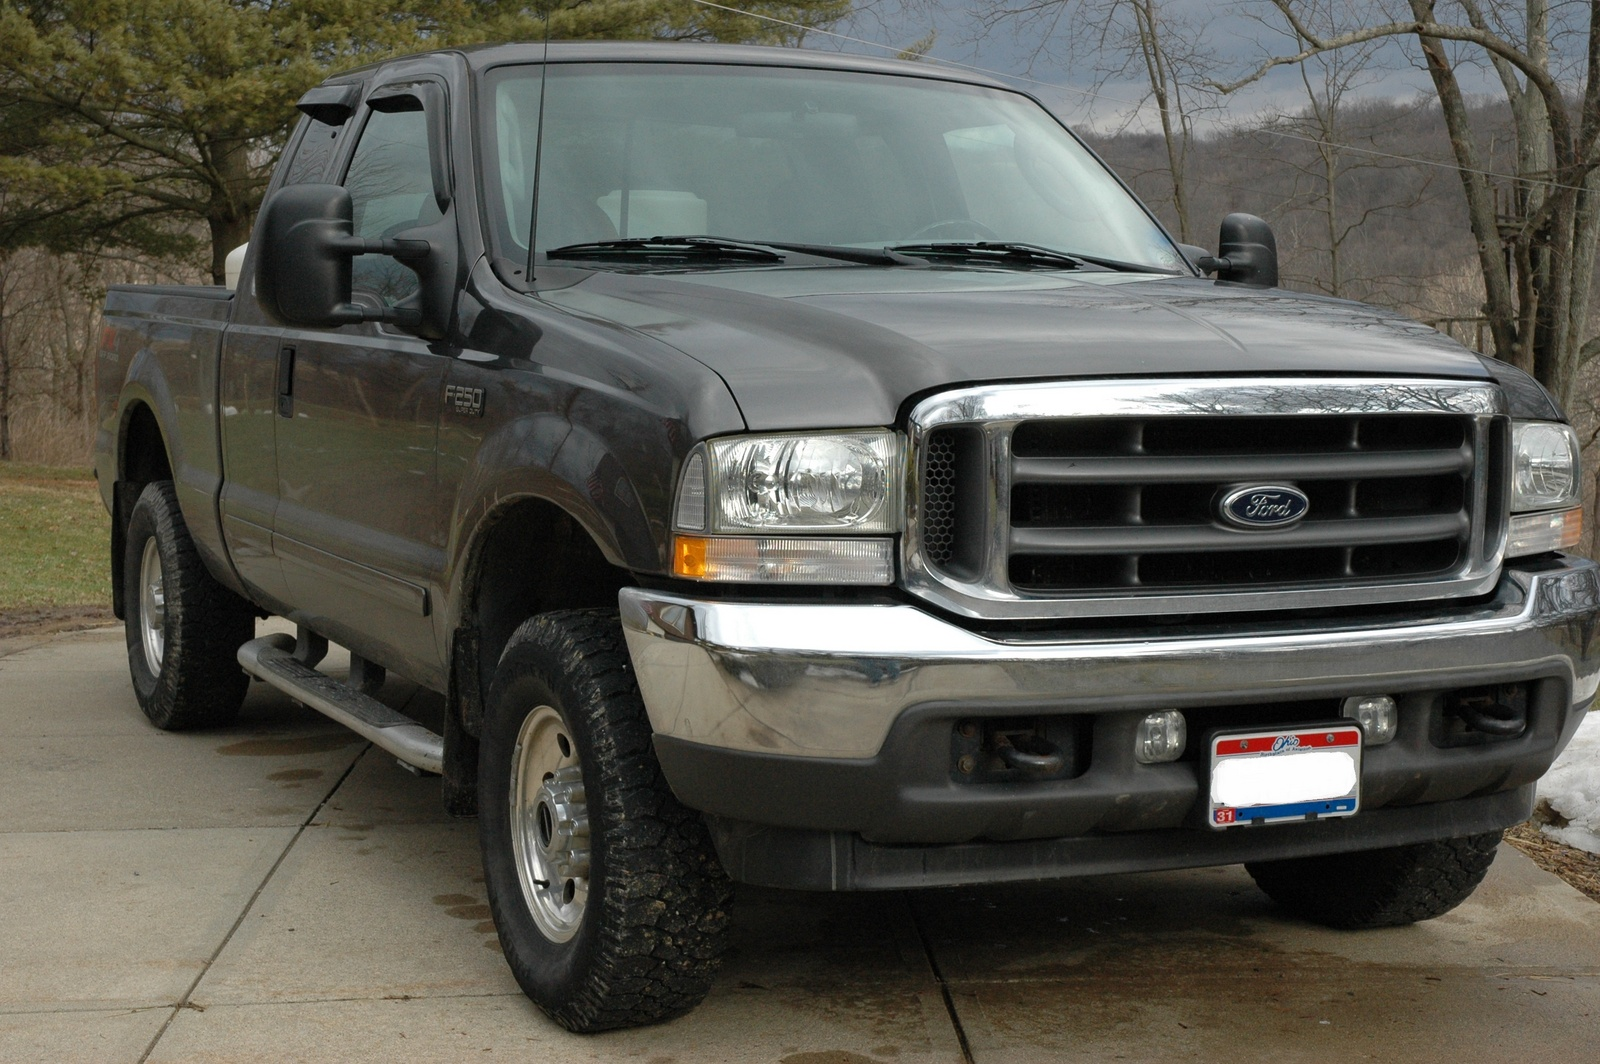 2003 ford f 250 super duty pictures cargurus. Black Bedroom Furniture Sets. Home Design Ideas